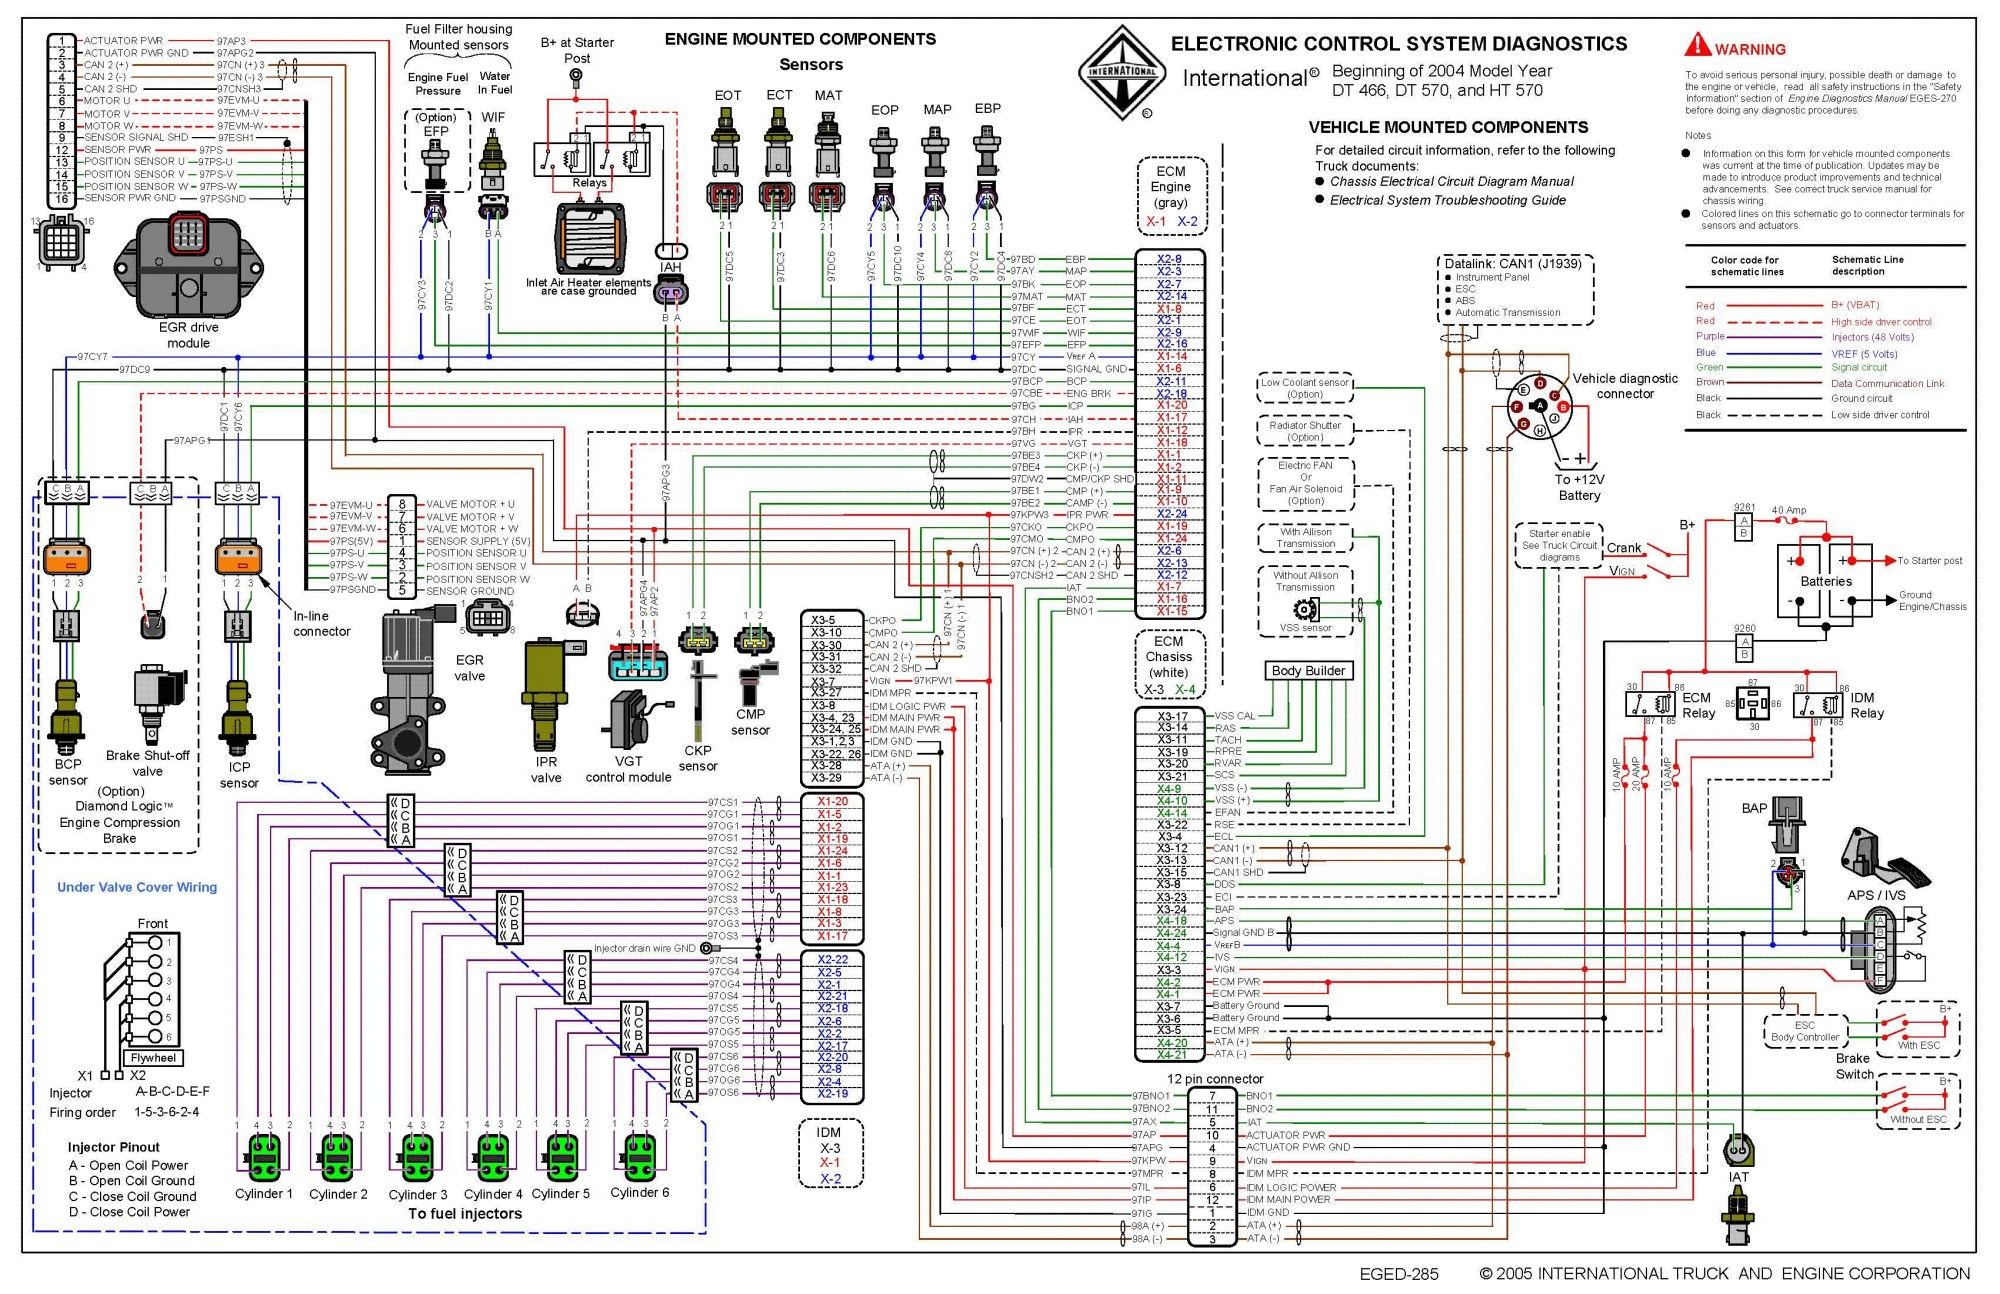 hight resolution of navistar maxxforce dt engine diagrams wiring diagram expert international 466t engine coolant diagram